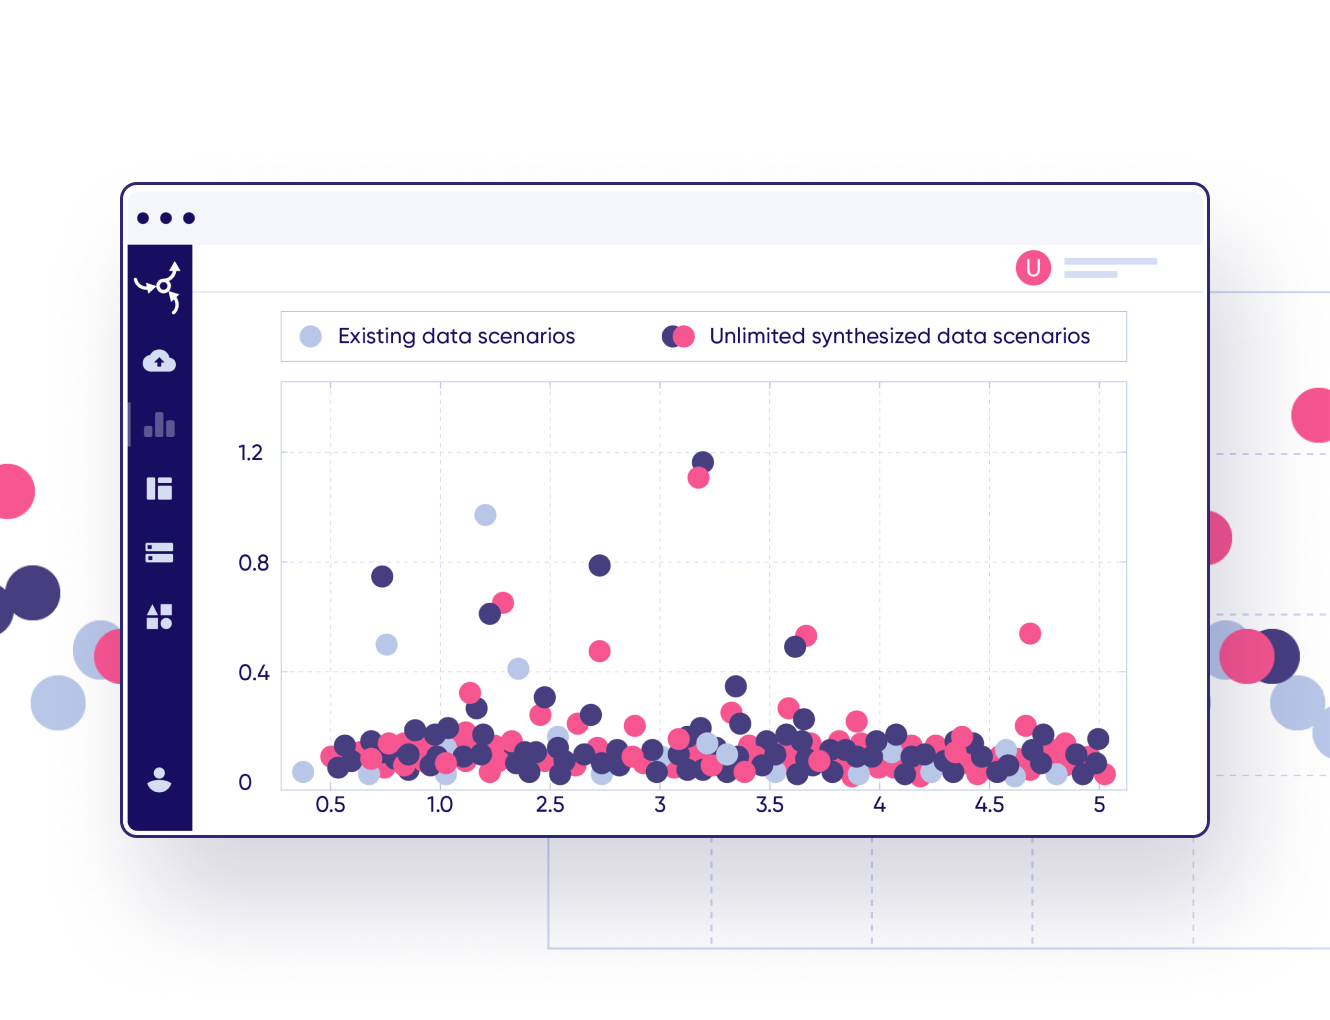 Data Science Applications of the Synthesized Platform